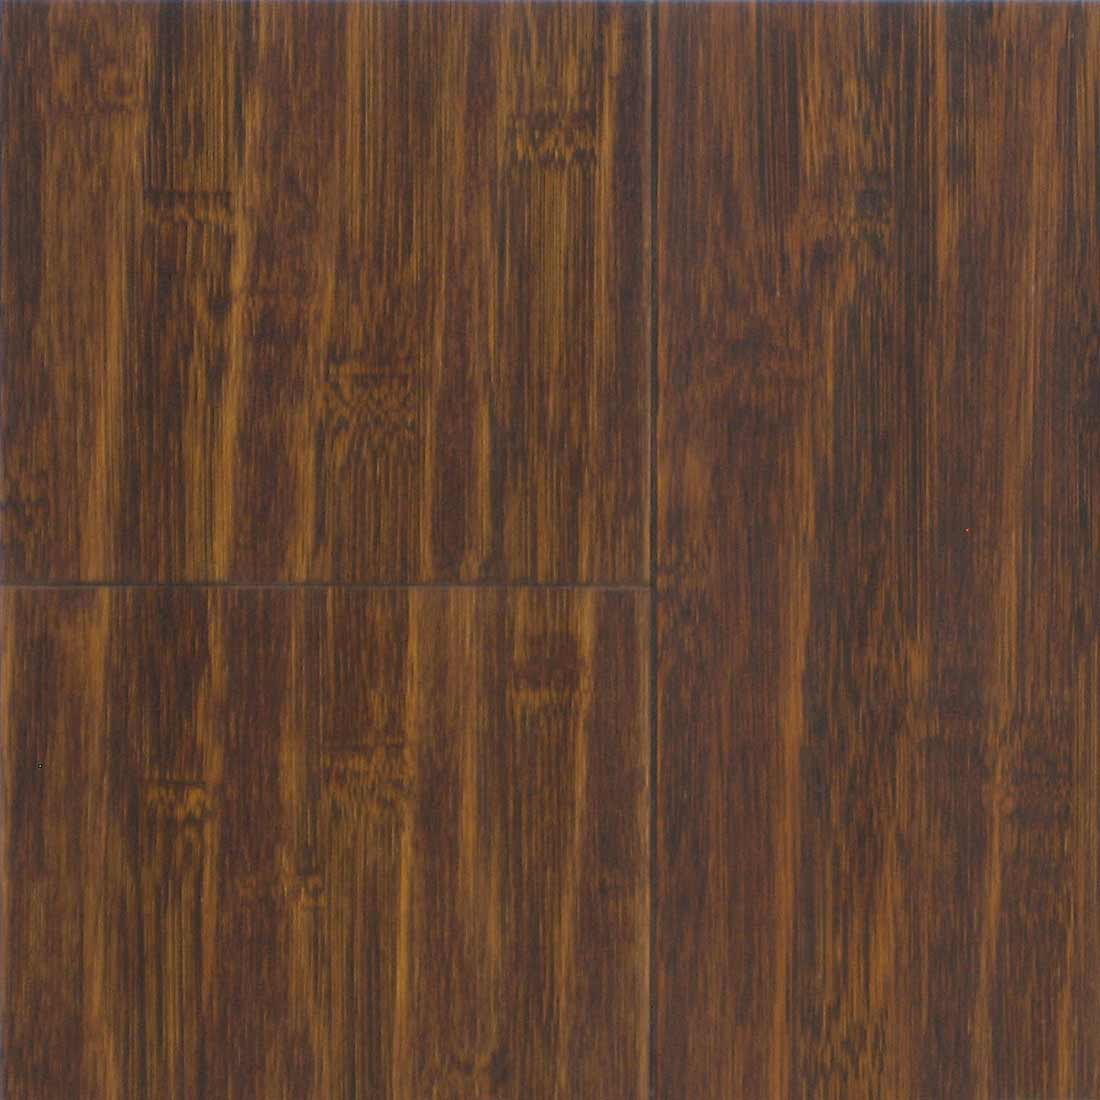 Distress Black Walnut Horizontal Hawa Bamboo Flooring